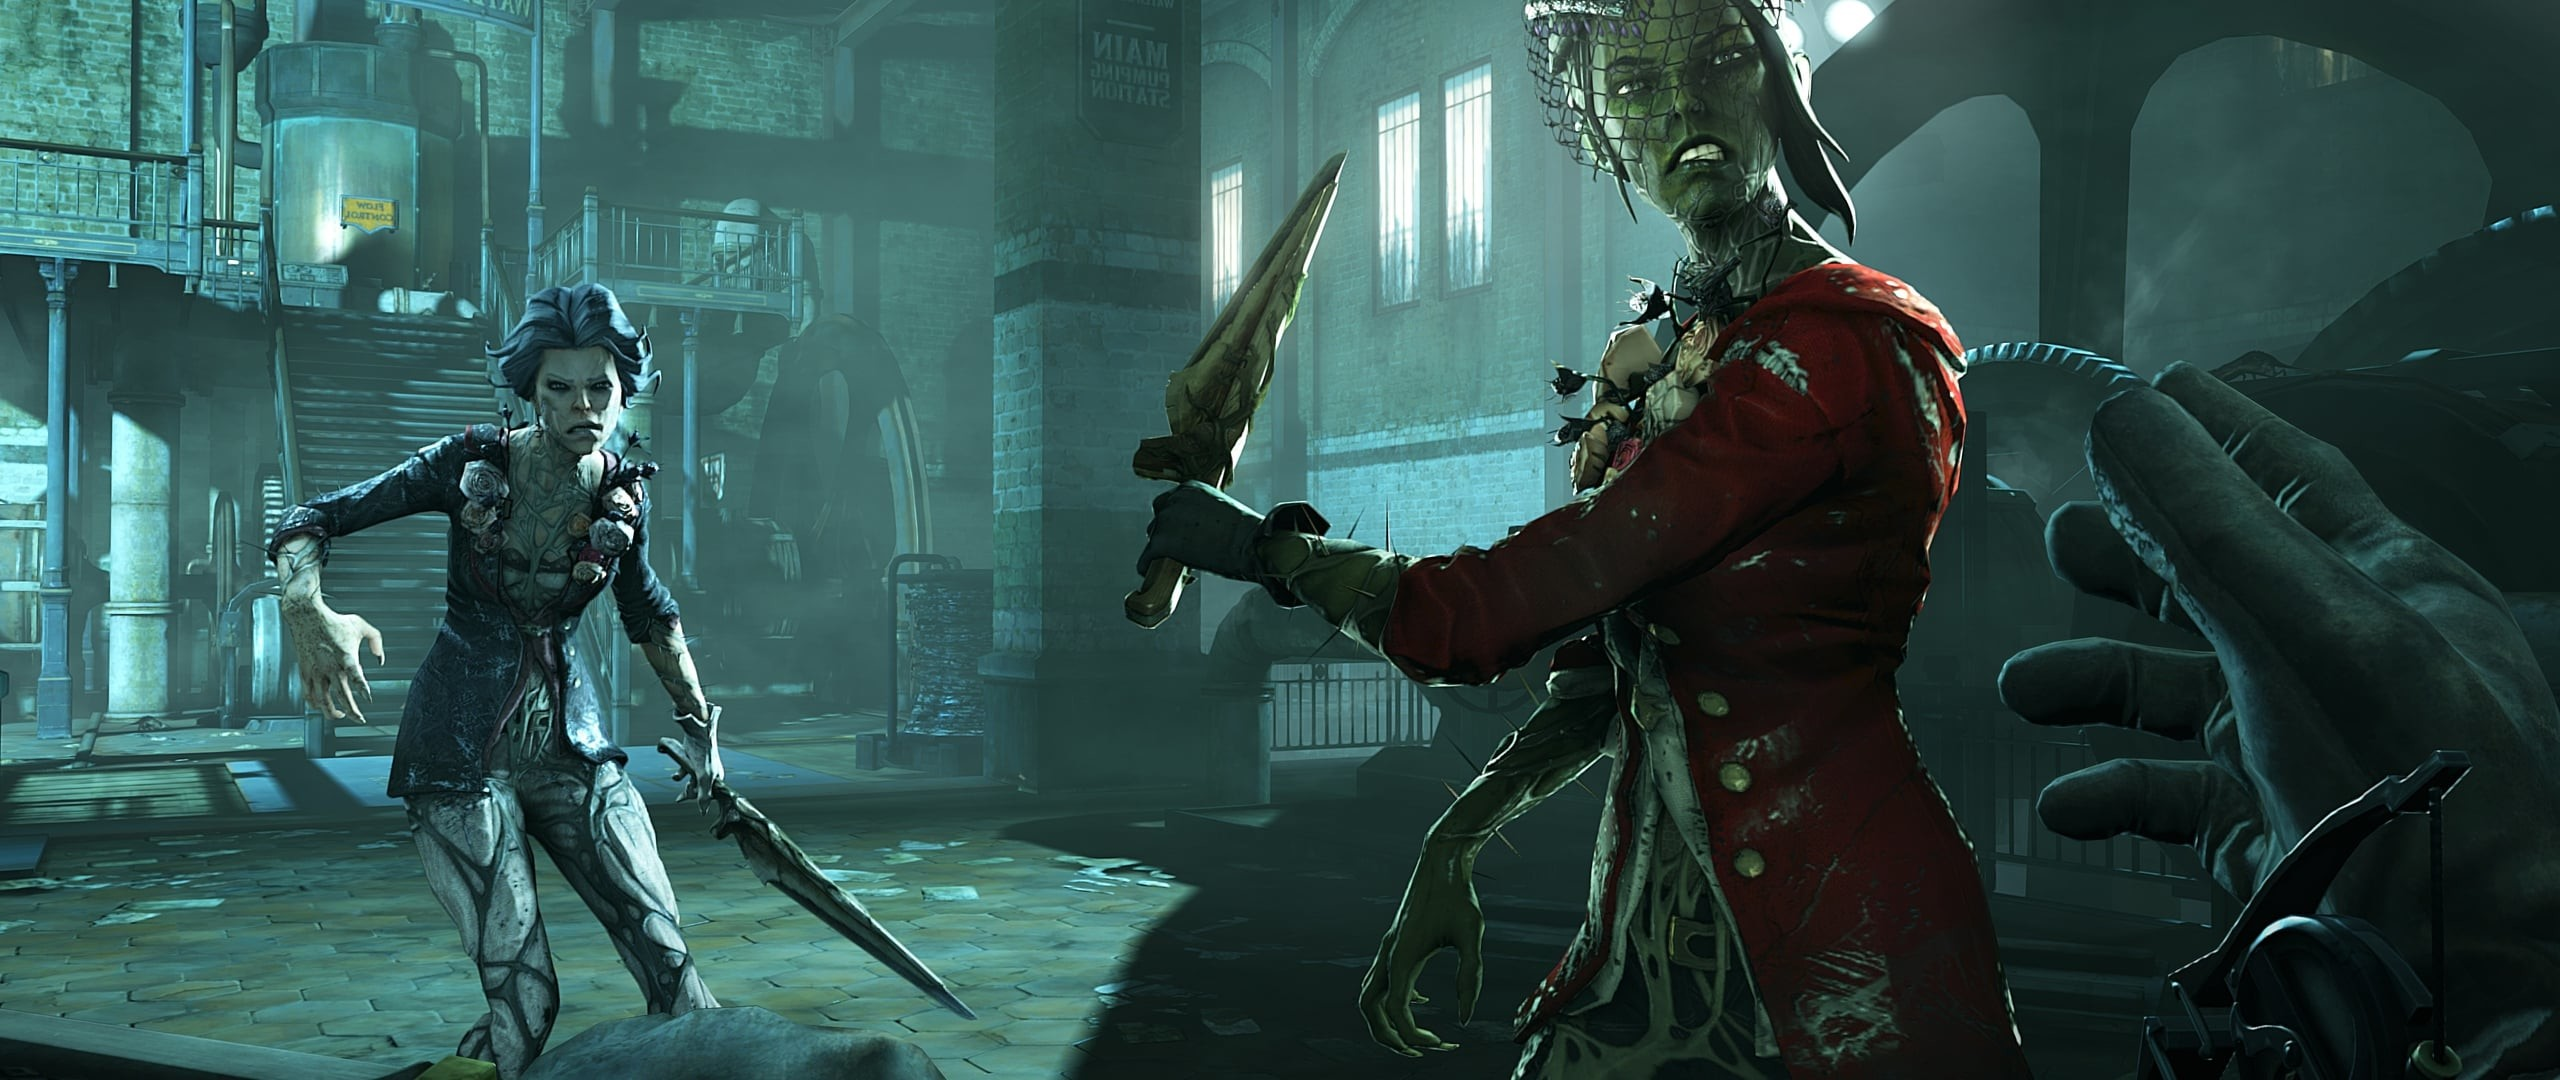 Dishonored 2 Wallpapers (81+ background pictures)